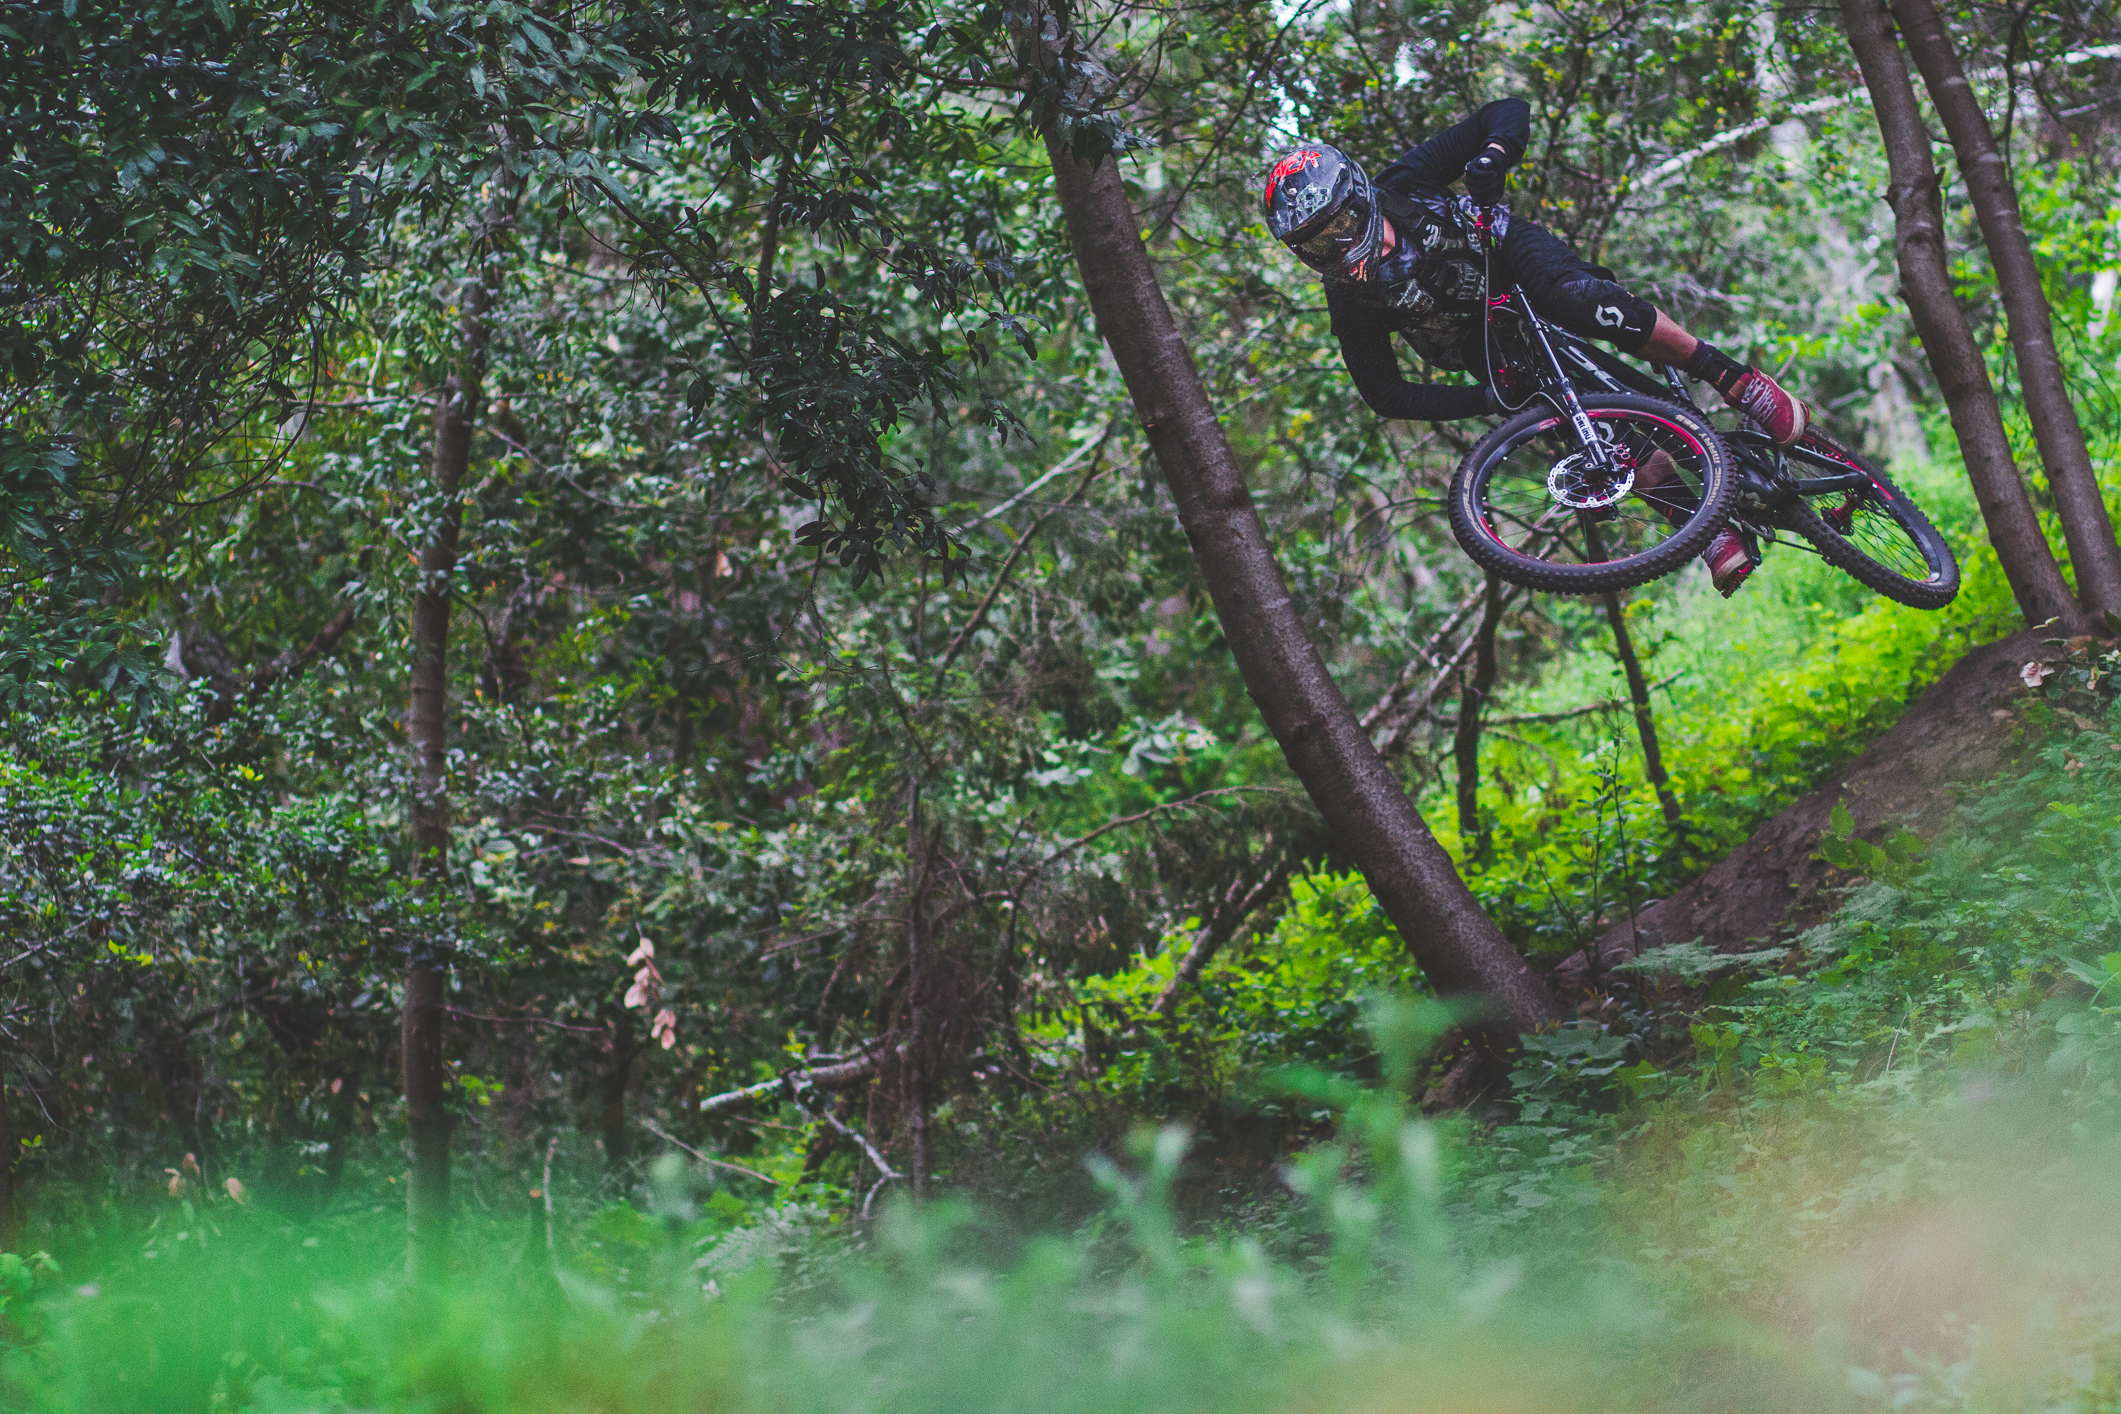 Nico Vink has spent the off-season recovering from his Rampage 2015 leg injury, building trails and jumps at the Royal Hills in France and getting back to riding his big bike. It was great to see him flowing around.